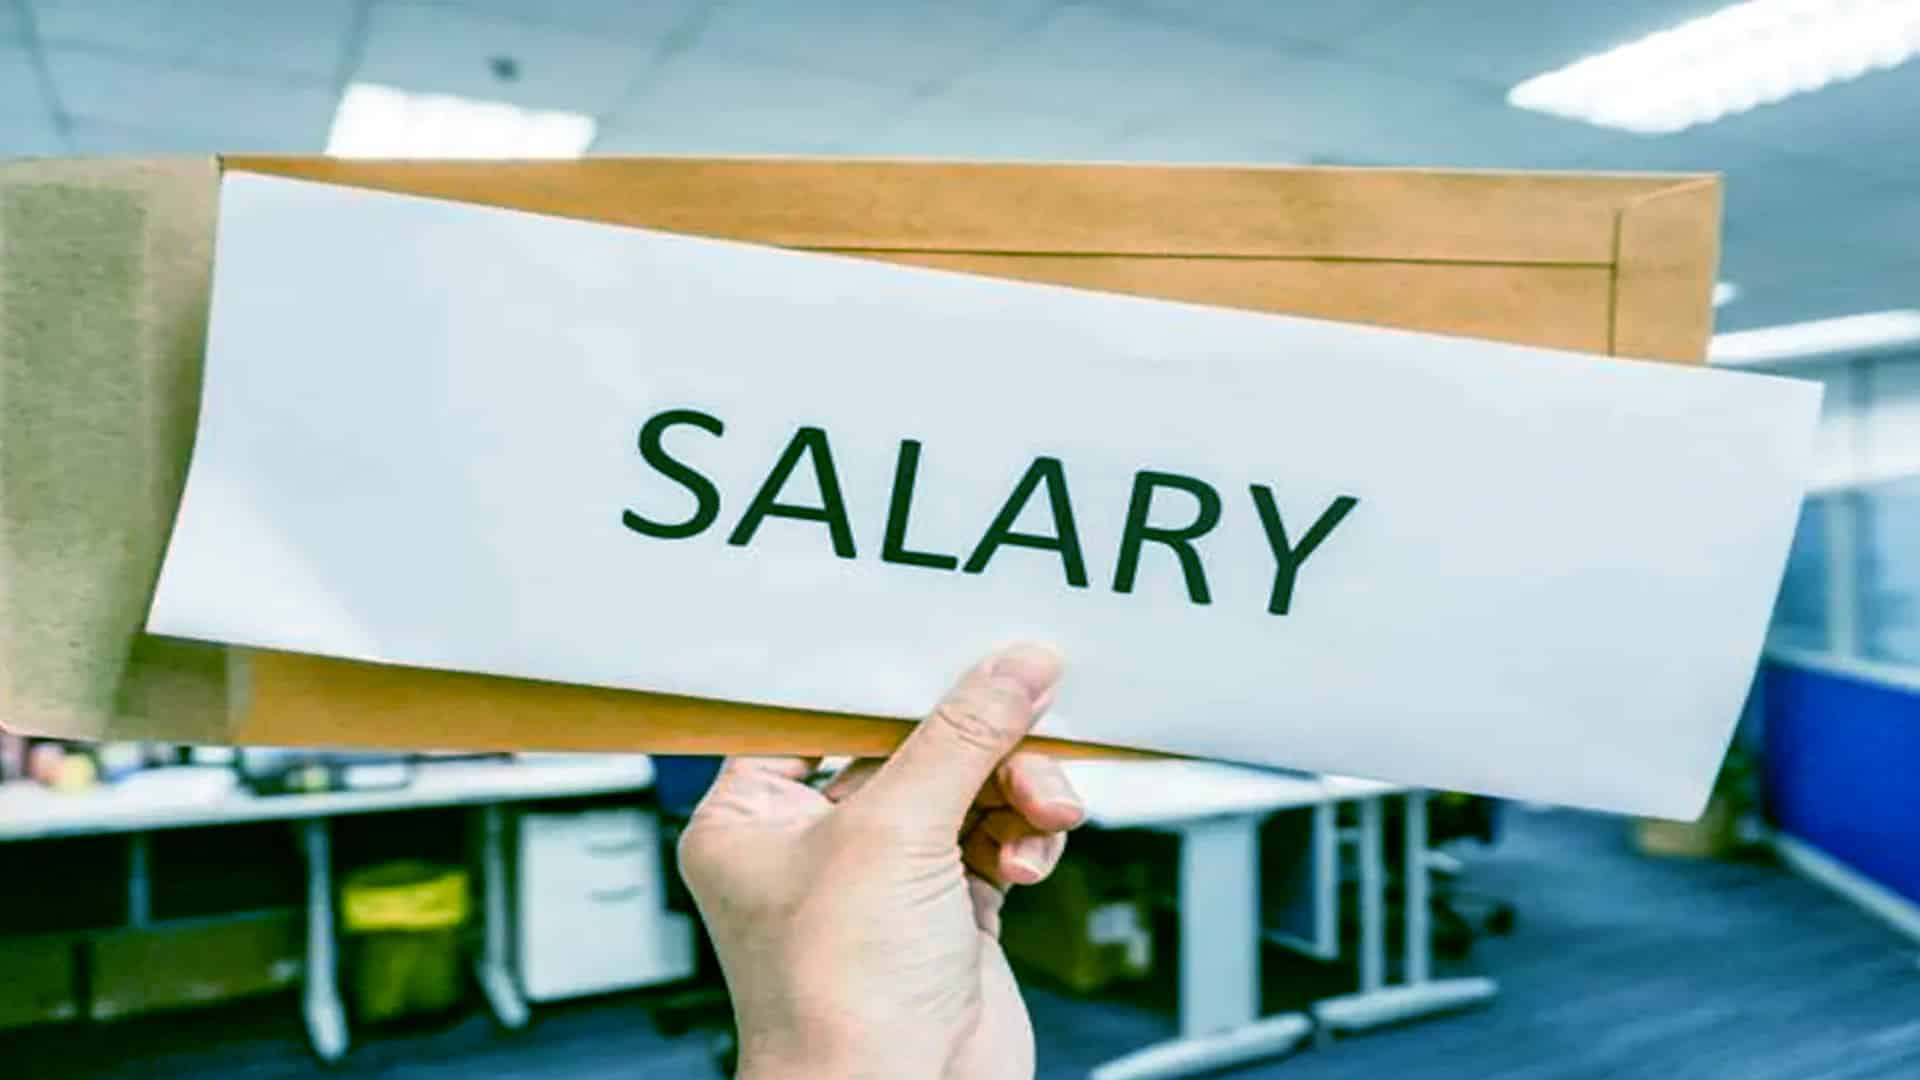 India Inc resorted to salary cuts in Q1, will be drag on economic recovery: Report